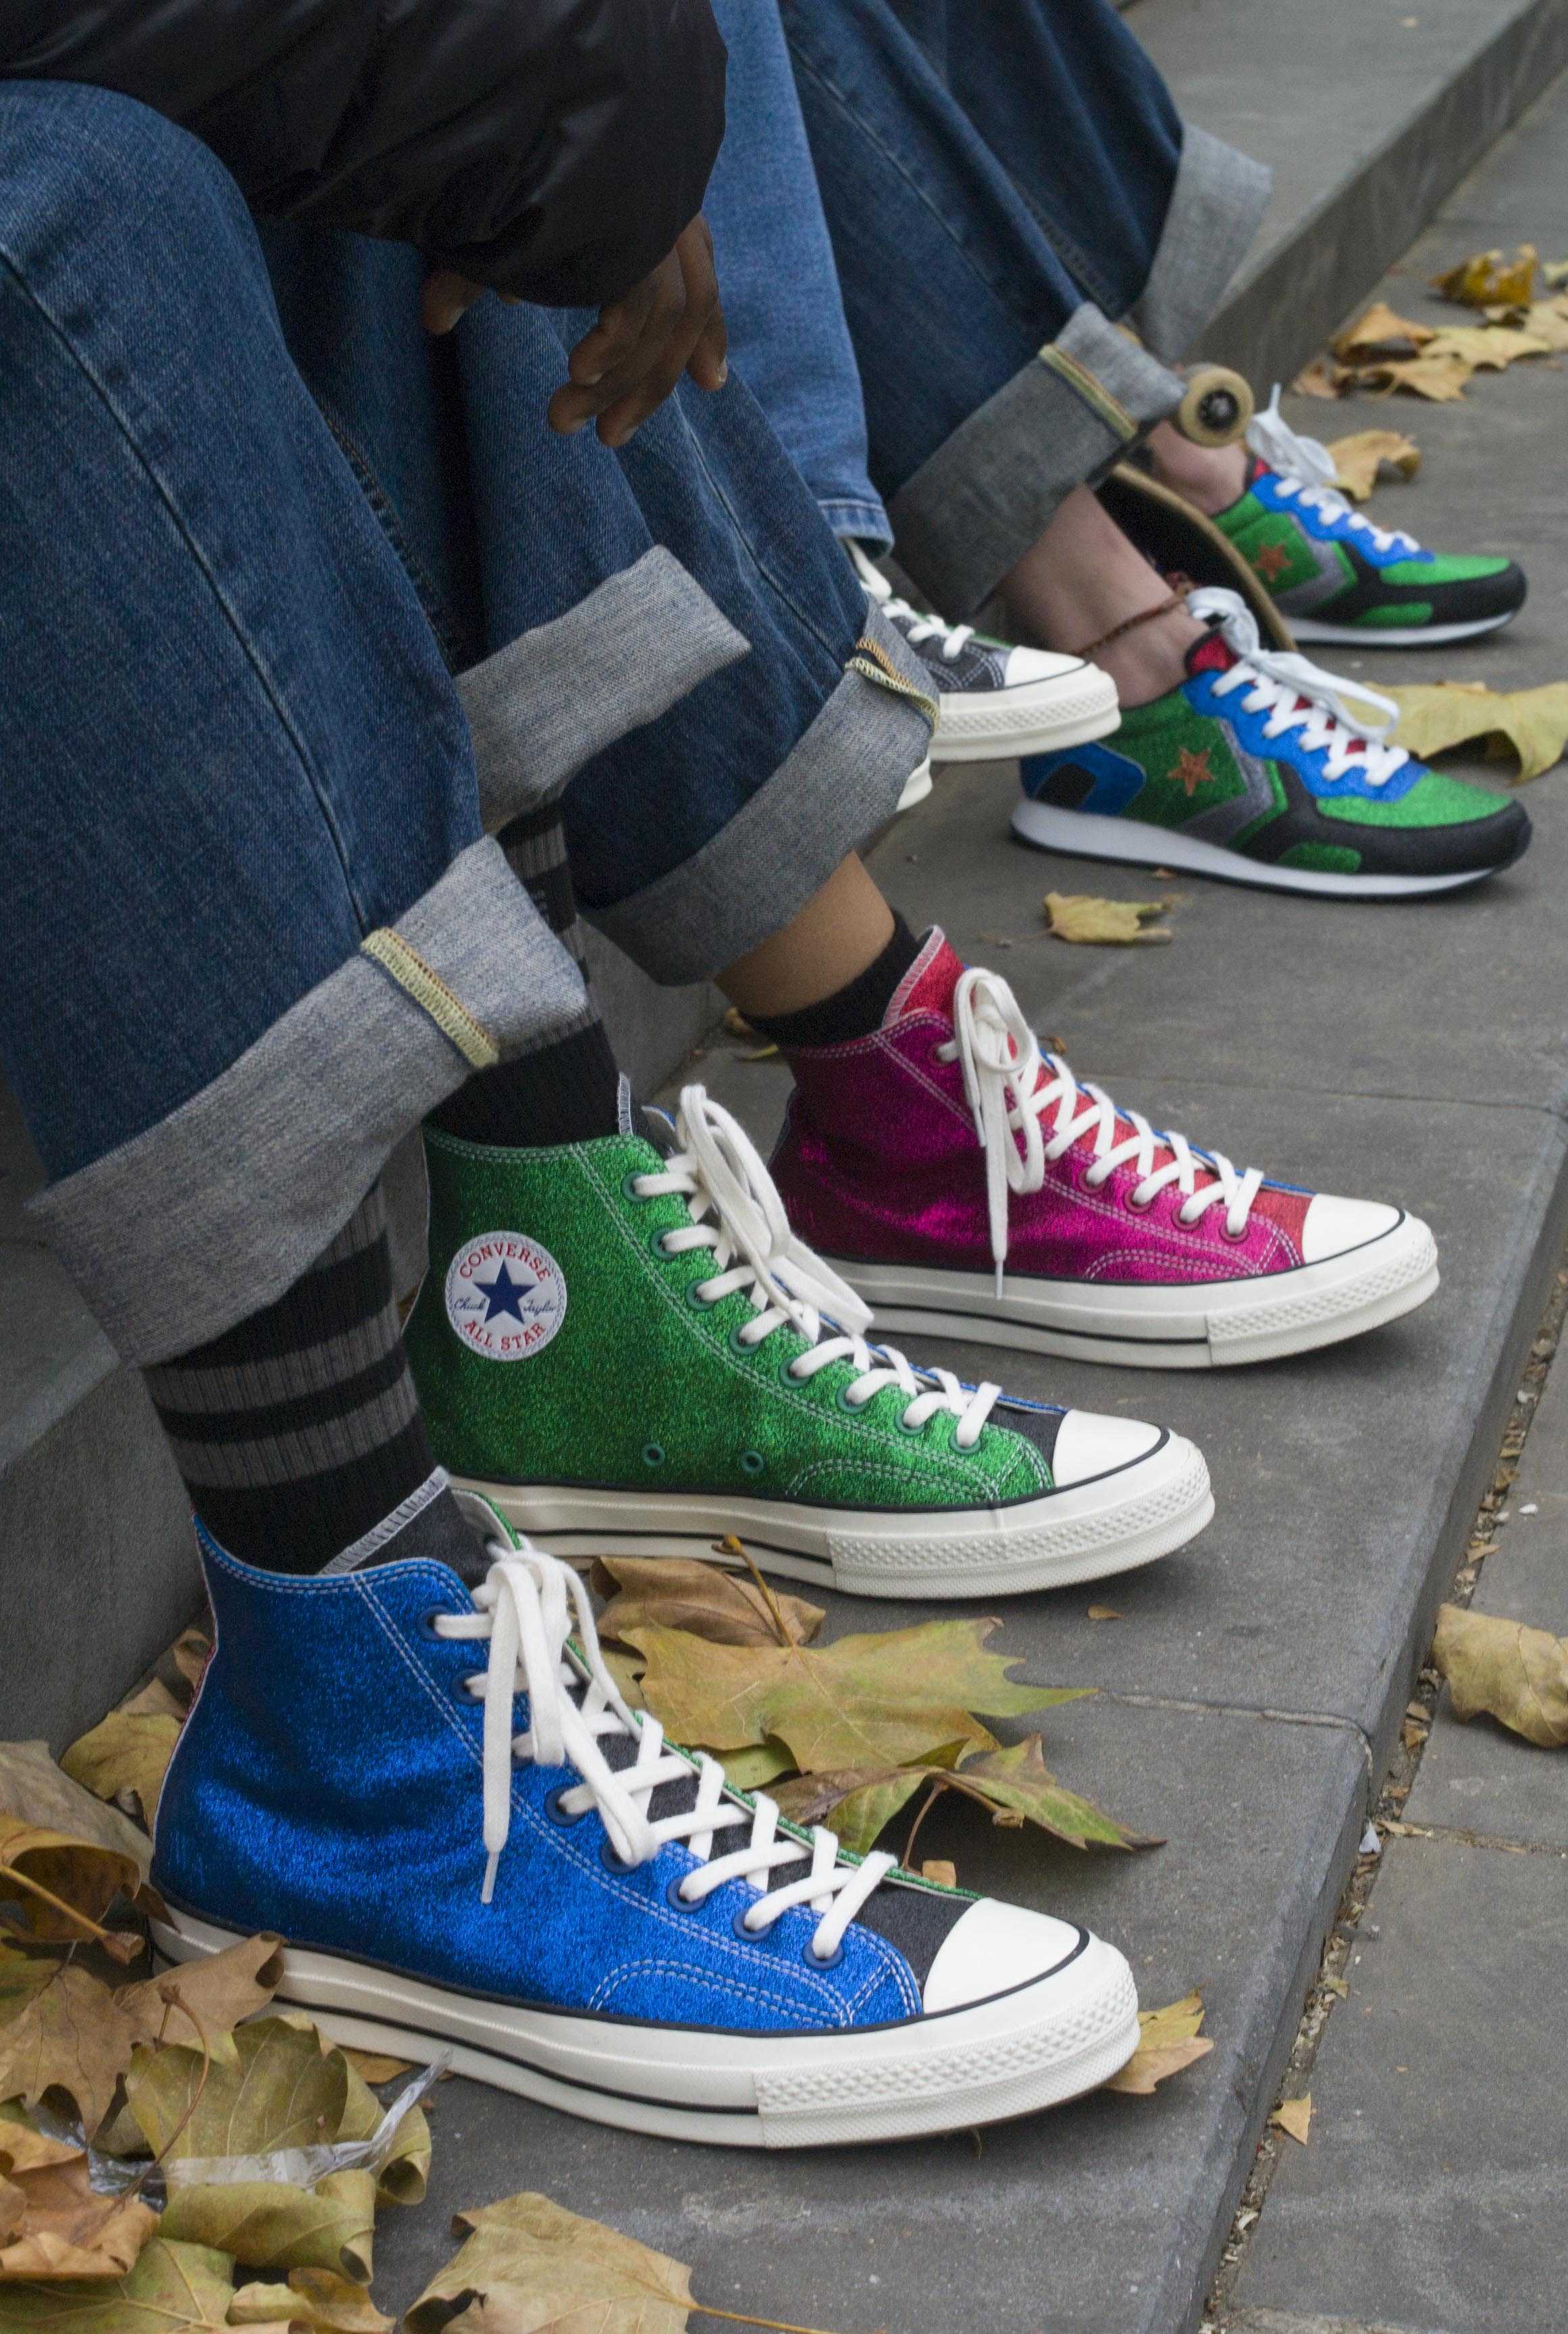 Converse Collab With JW Anderson To Create Glittery Converse